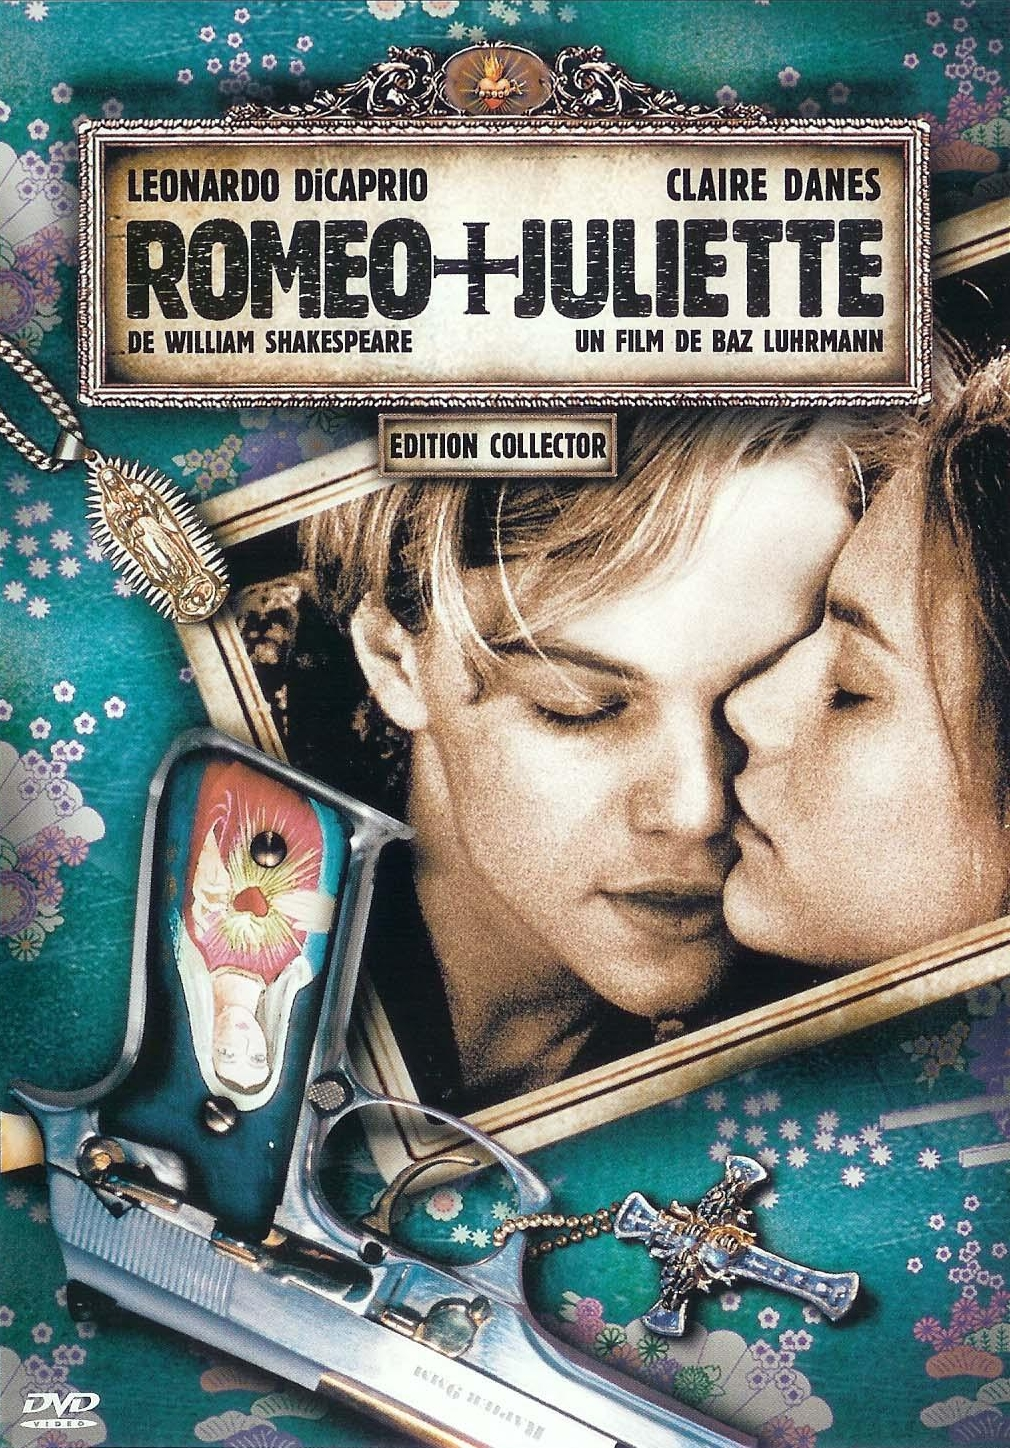 the use of water as a representation of love in the play romeo and juliet